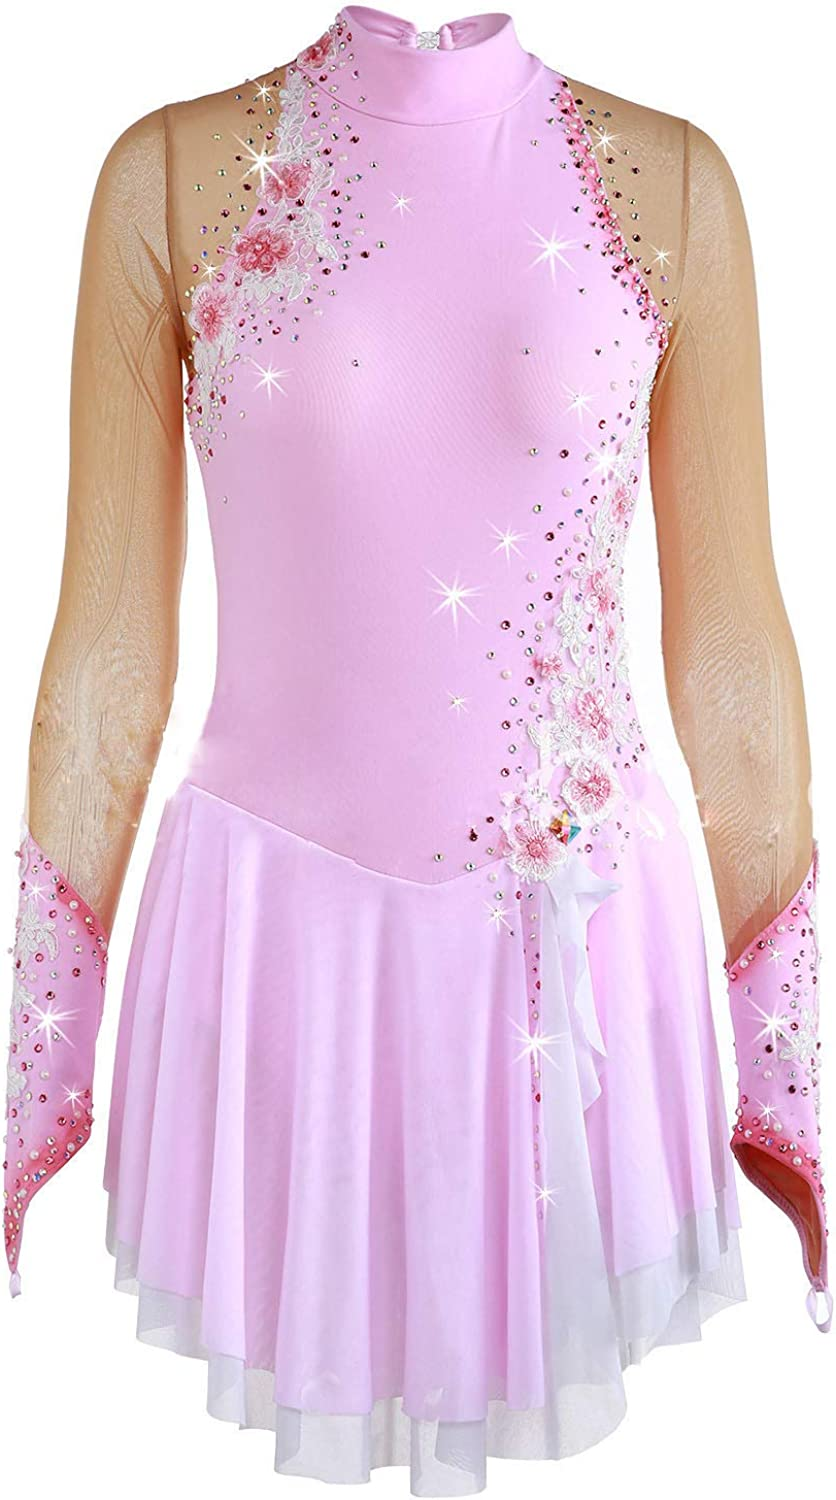 Heart&M Ice Skating Dress For Girls, Handmade Figure Skating Competition Costume With Crystals And Appliques Long Sleeved Pink